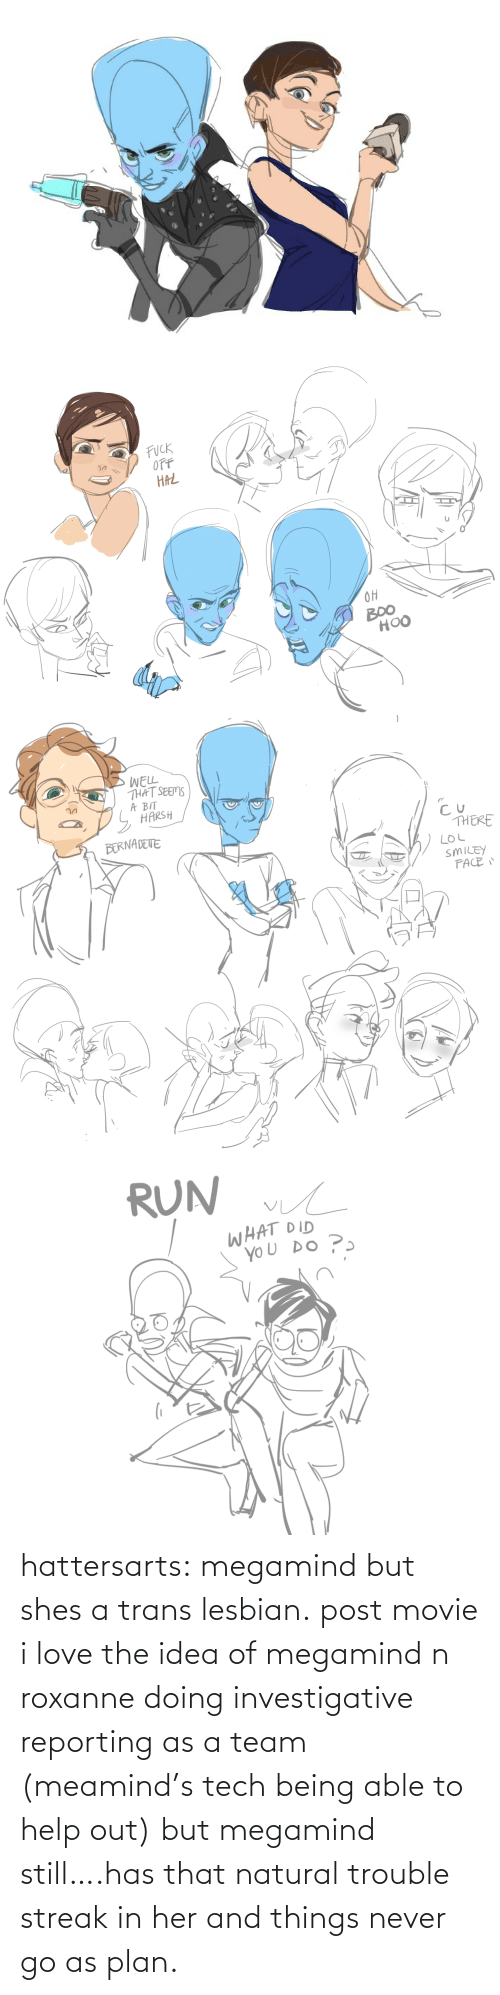 team: hattersarts:  megamind but shes a trans lesbian.  post movie i love the idea of megamind n roxanne doing investigative reporting as a team (meamind's tech being able to help out) but megamind still….has that natural trouble streak in her and things never go as plan.